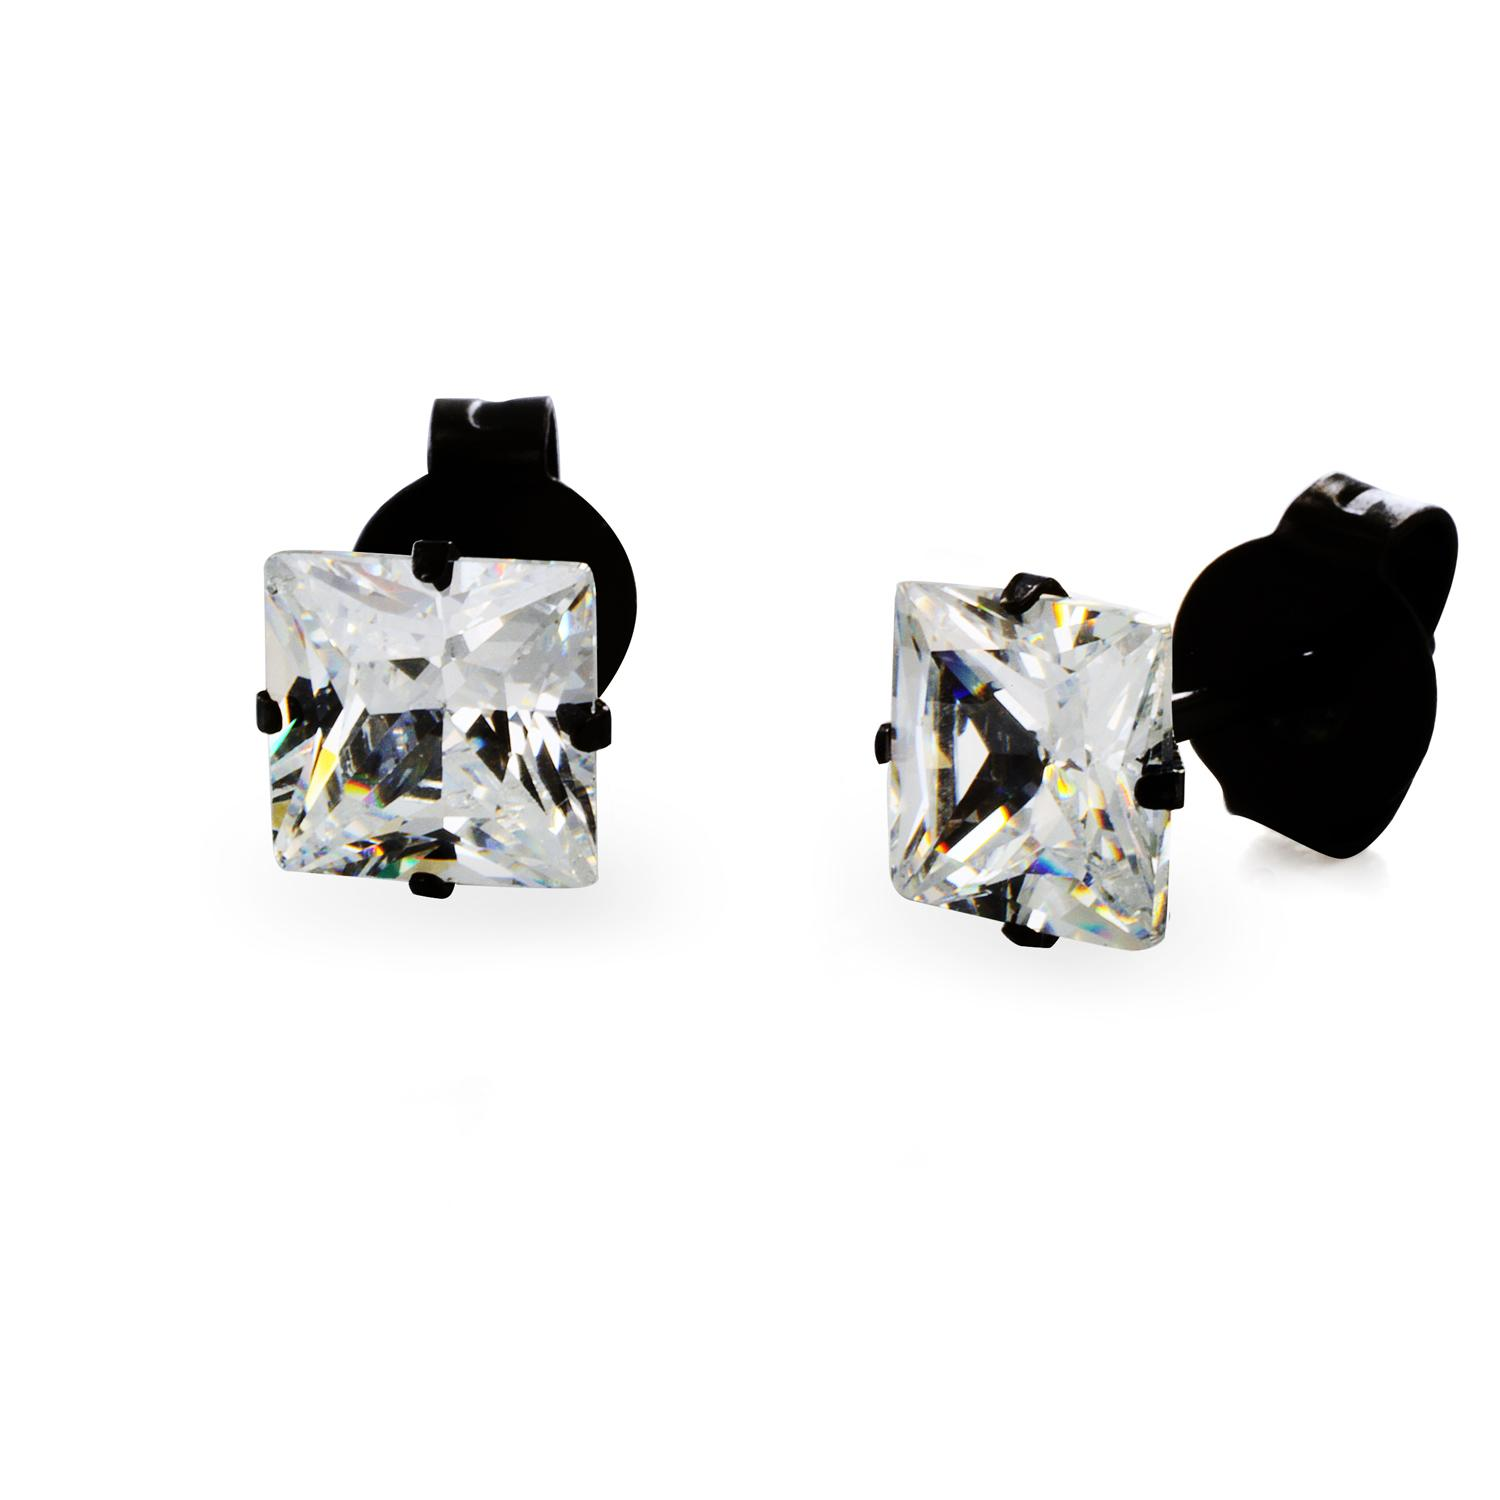 Black Plated Stainless Steel Stud Earrings with Princess Cut Clear CZ - 4 mm